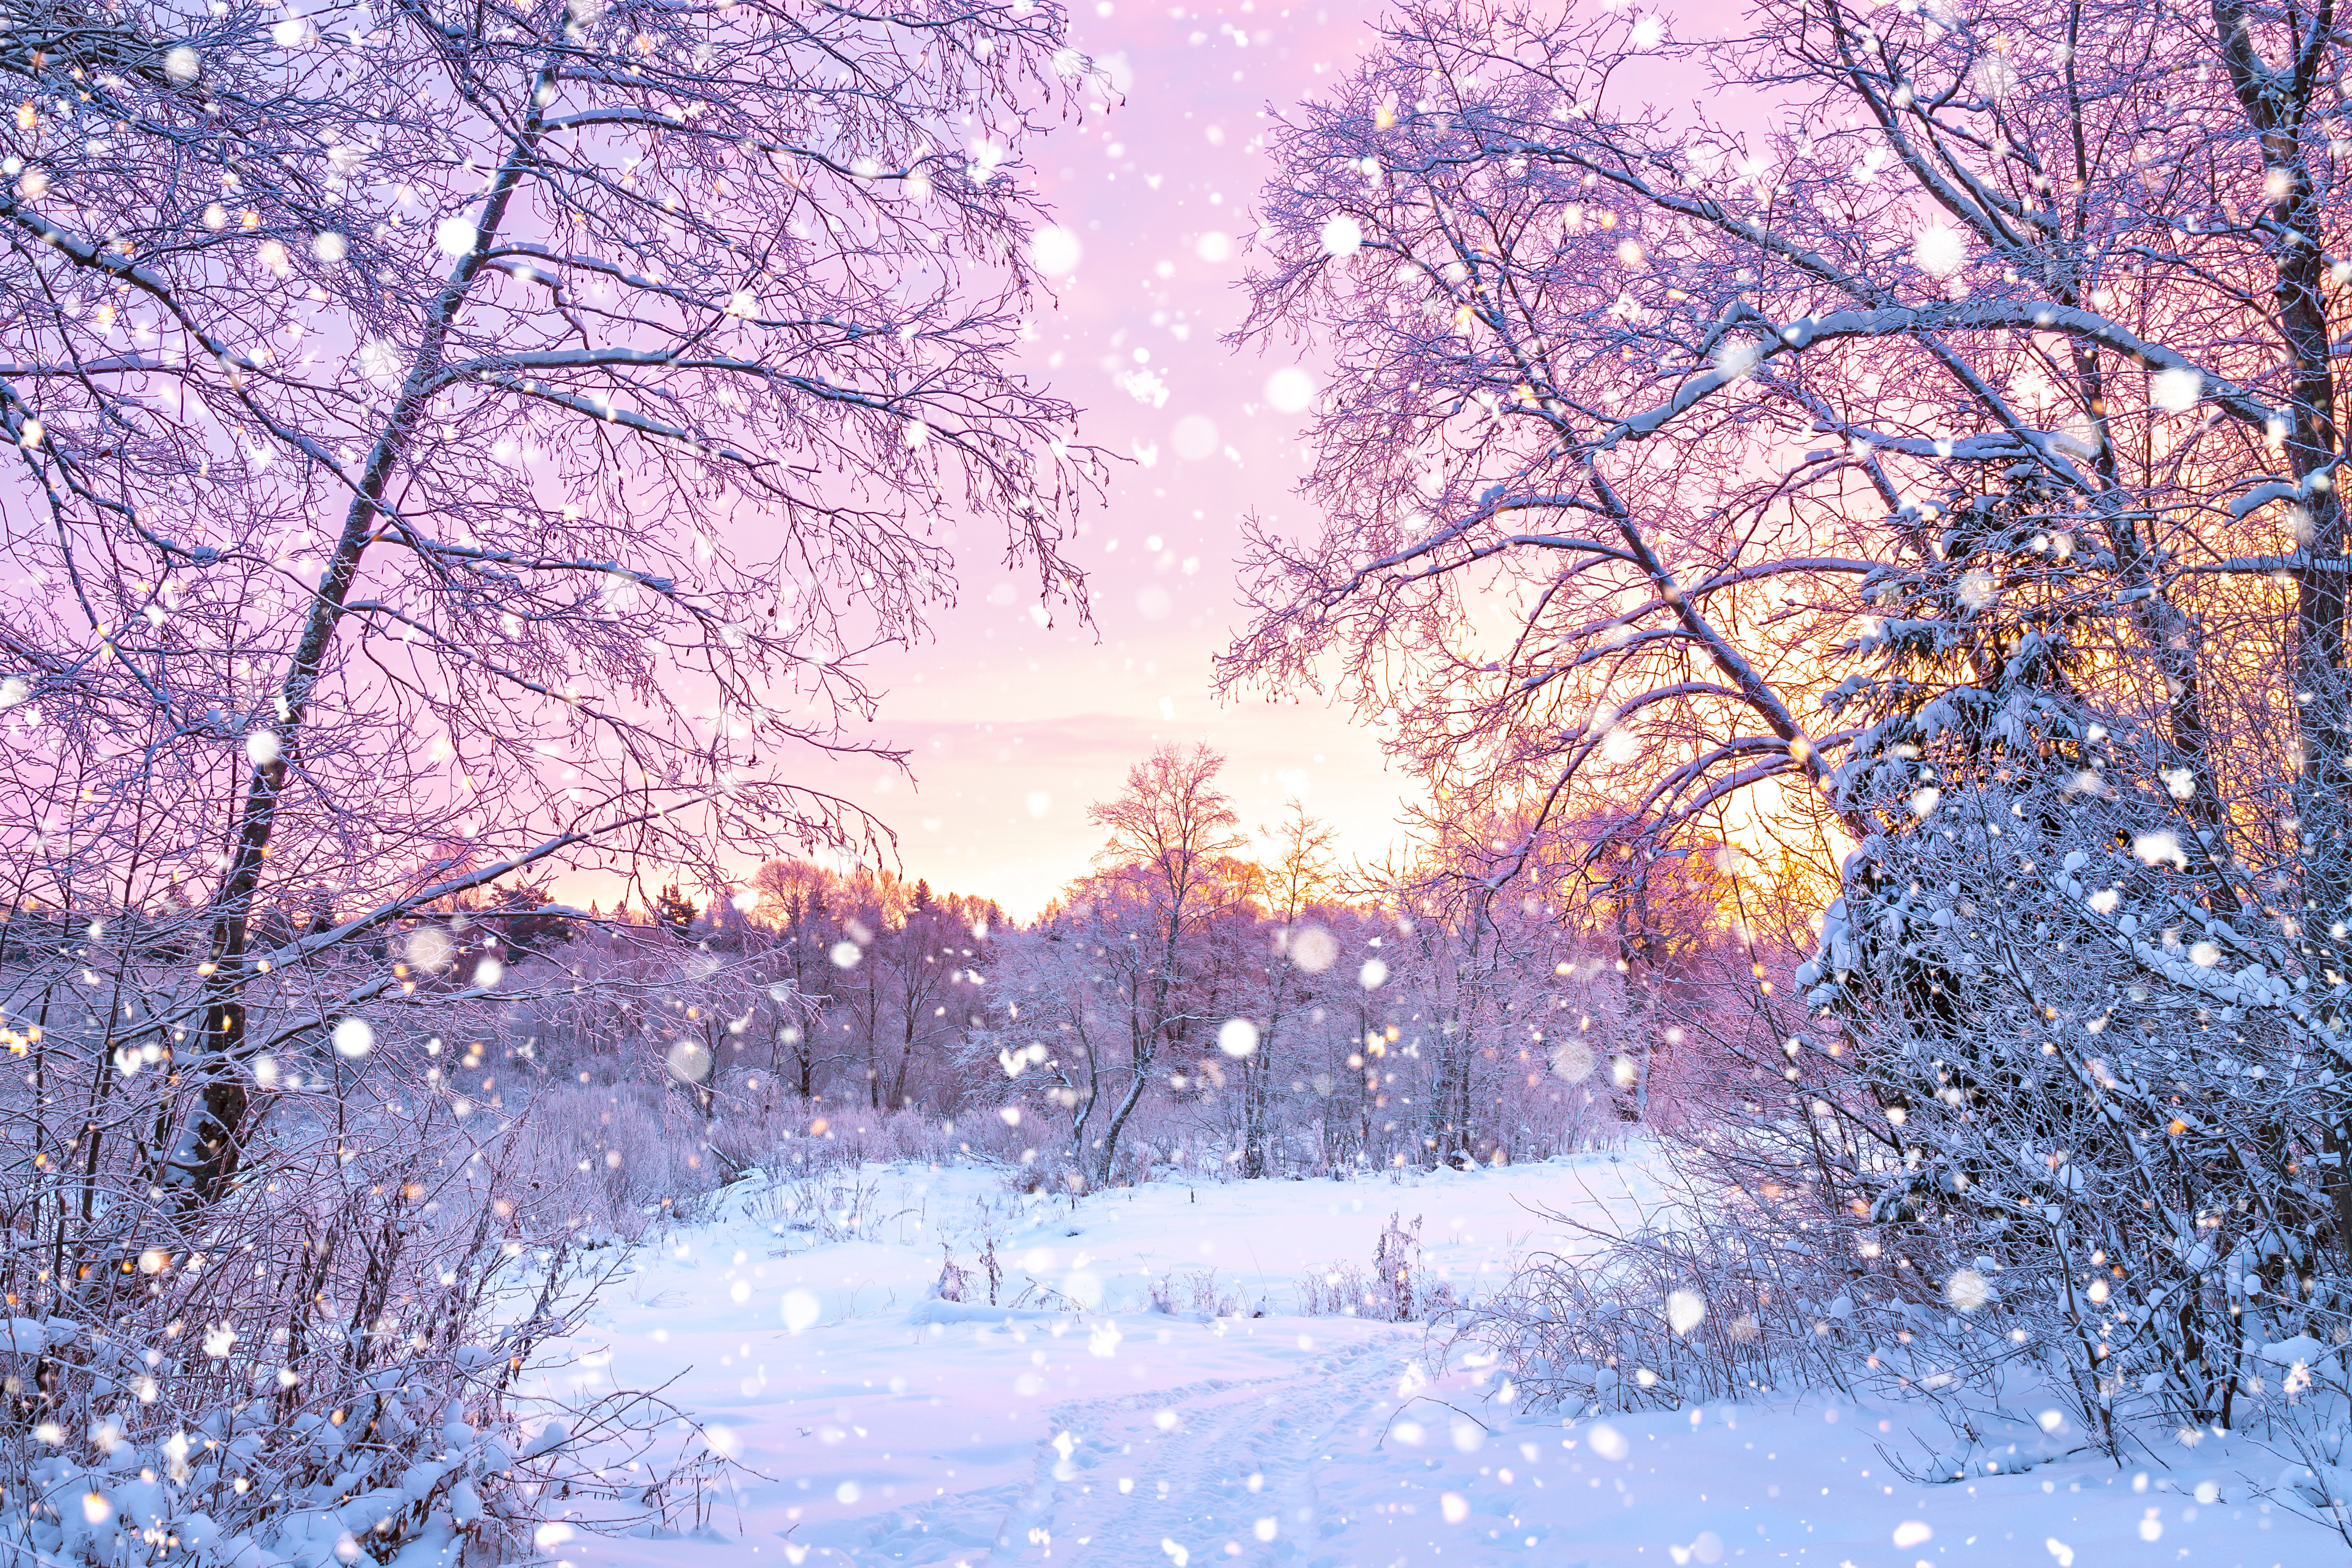 Forest trees sunrise winterly morning Nature wallpaper